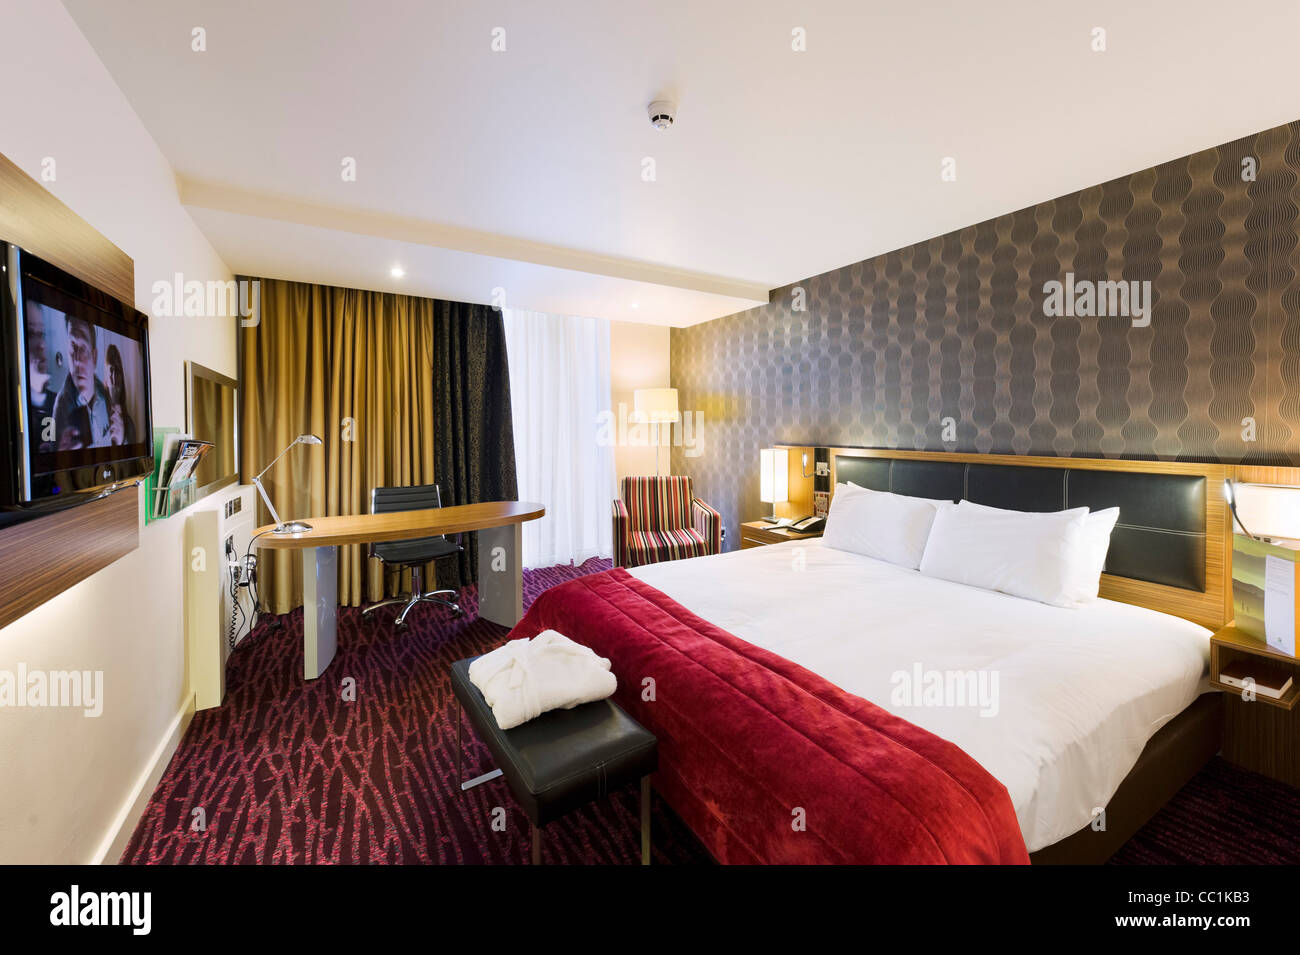 Executive room at the Holiday Inn, Media City, Salford Quays, Manchester, UK - Stock Image